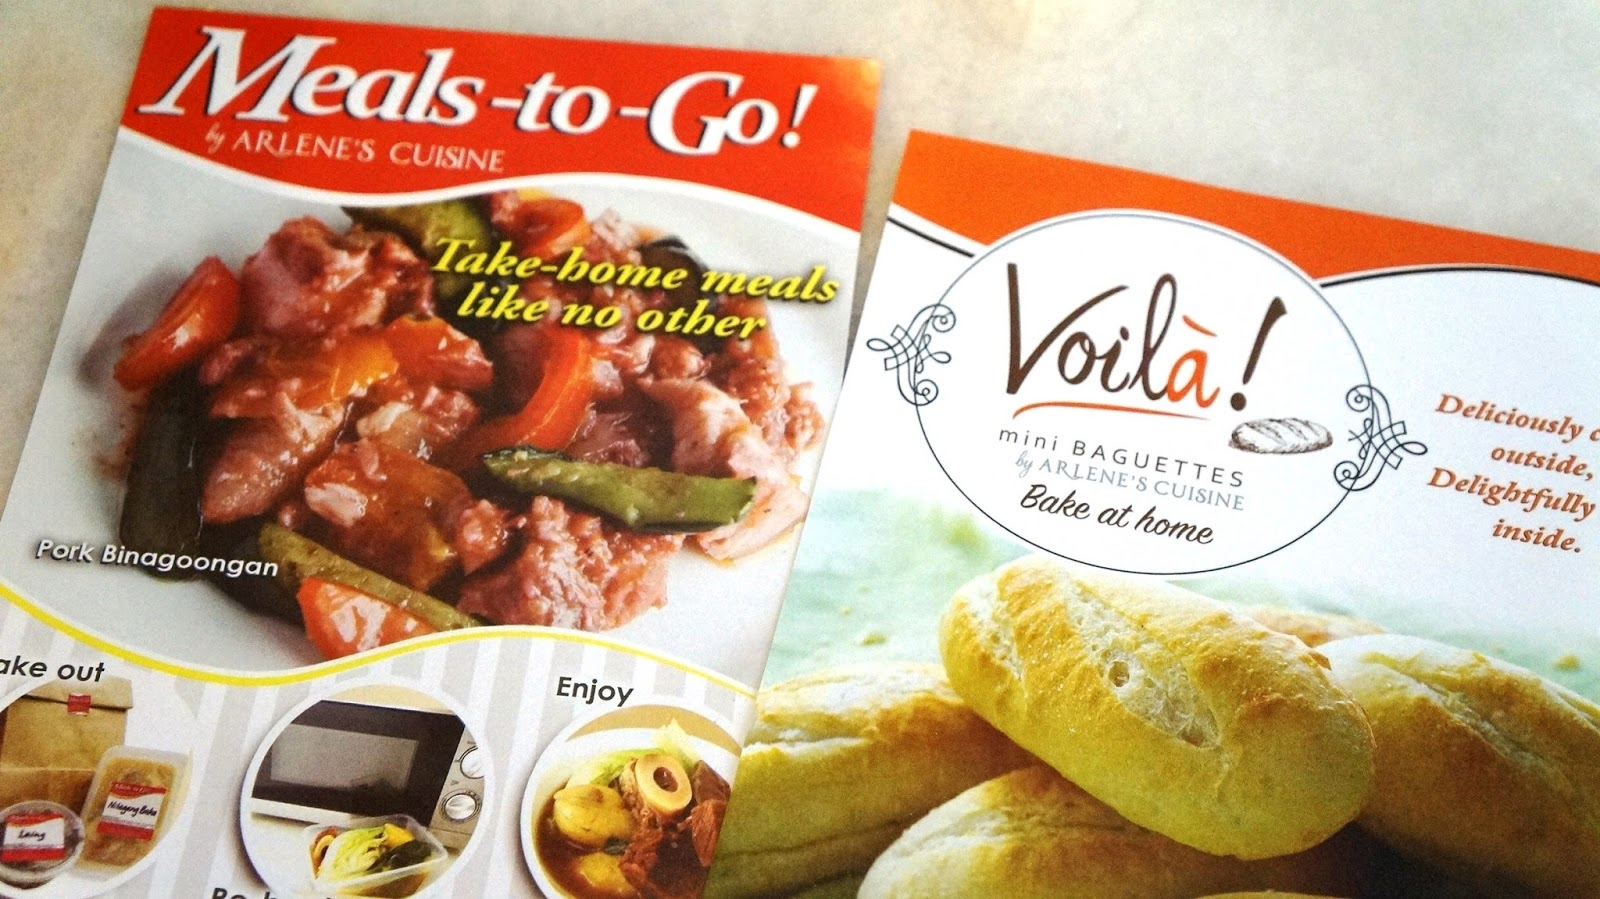 Meals to go arlene 39 s cuisine knows the trend of the near for Arlene s cuisine